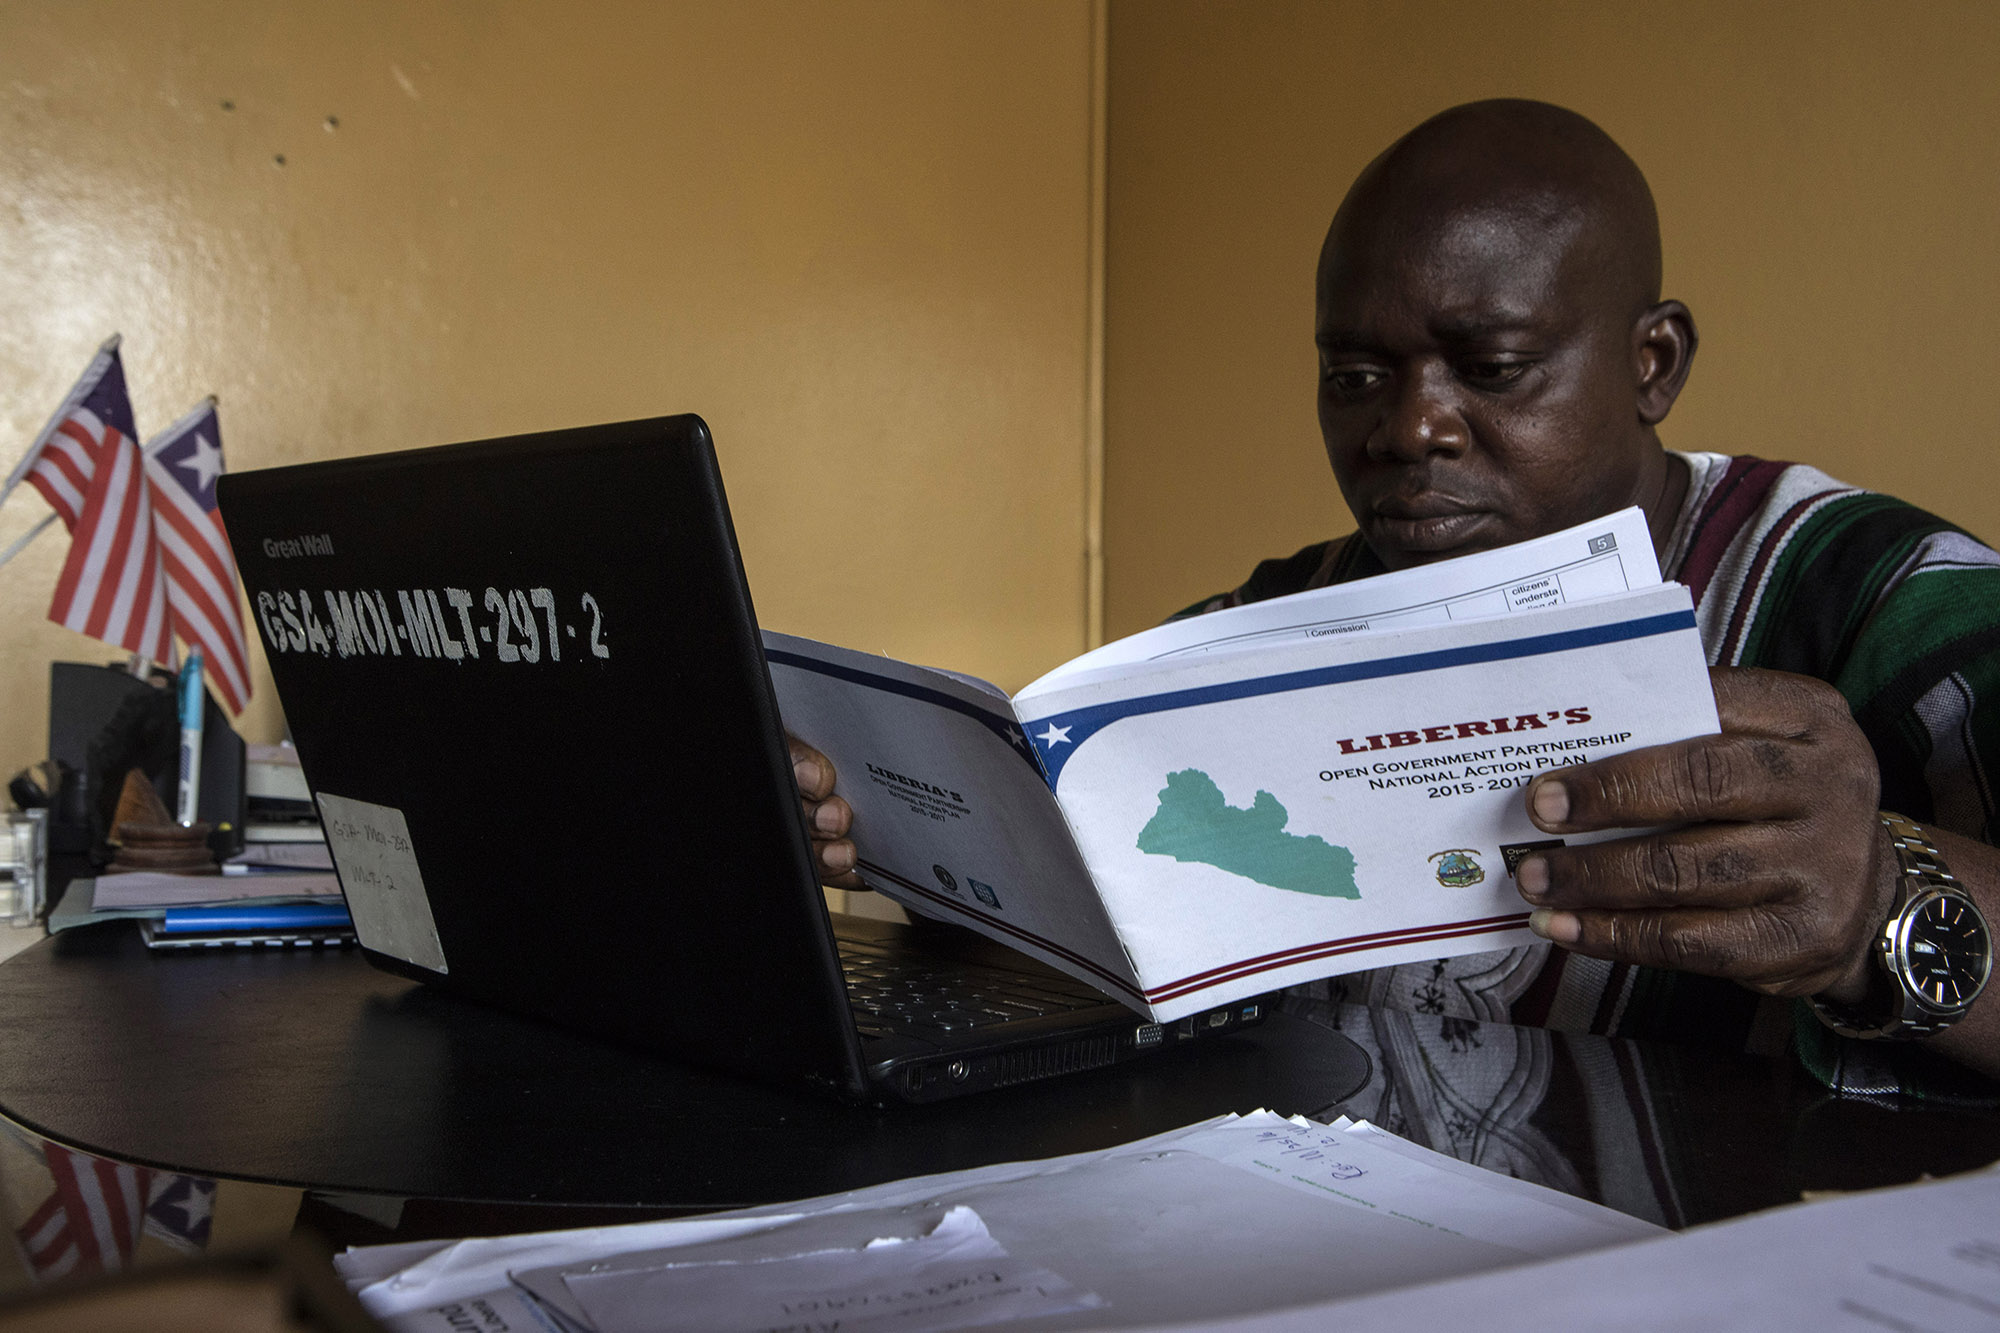 Andrew G. Temeh, Deputy Minister of Administration at the Ministry of Information (MICAT) and the OGP Focal Person, works at his desk on Tuesday, Aug. 29. Minister Temeh is working with OGP to create better transparency and accountability in the government. Liberia joined OGP in 2011.